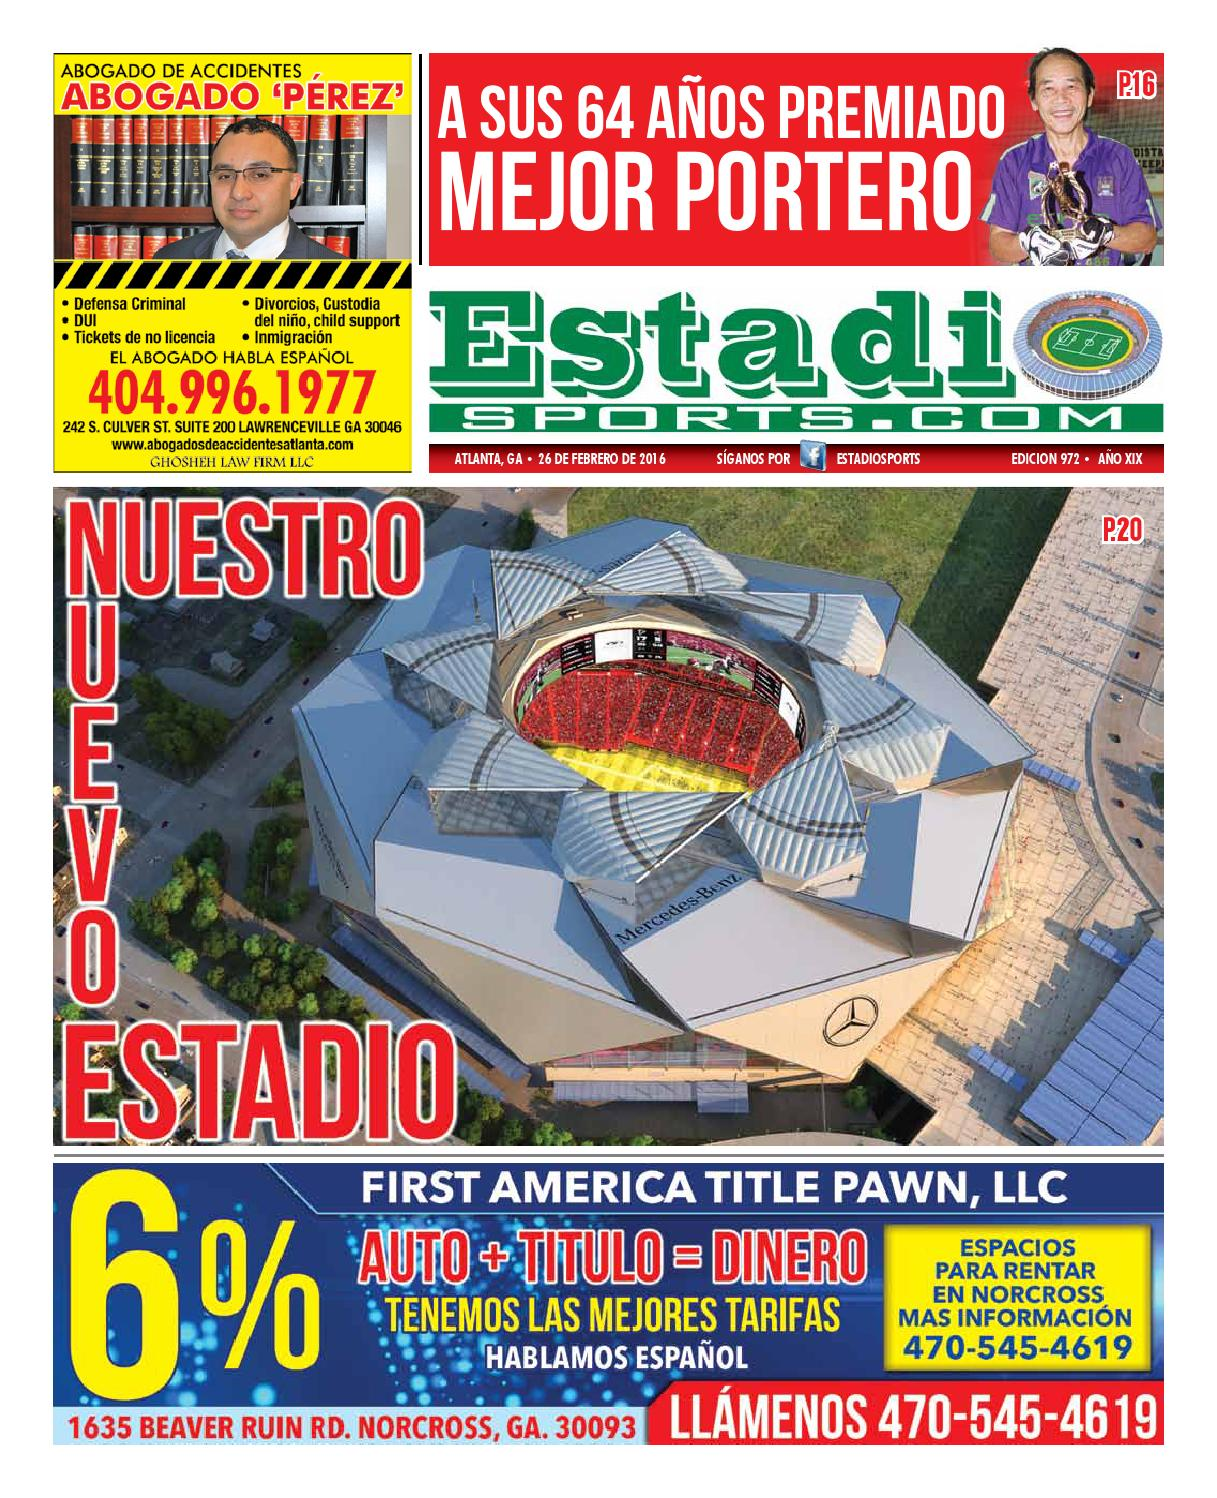 ESTADIO by Estadiosports.com - issuu